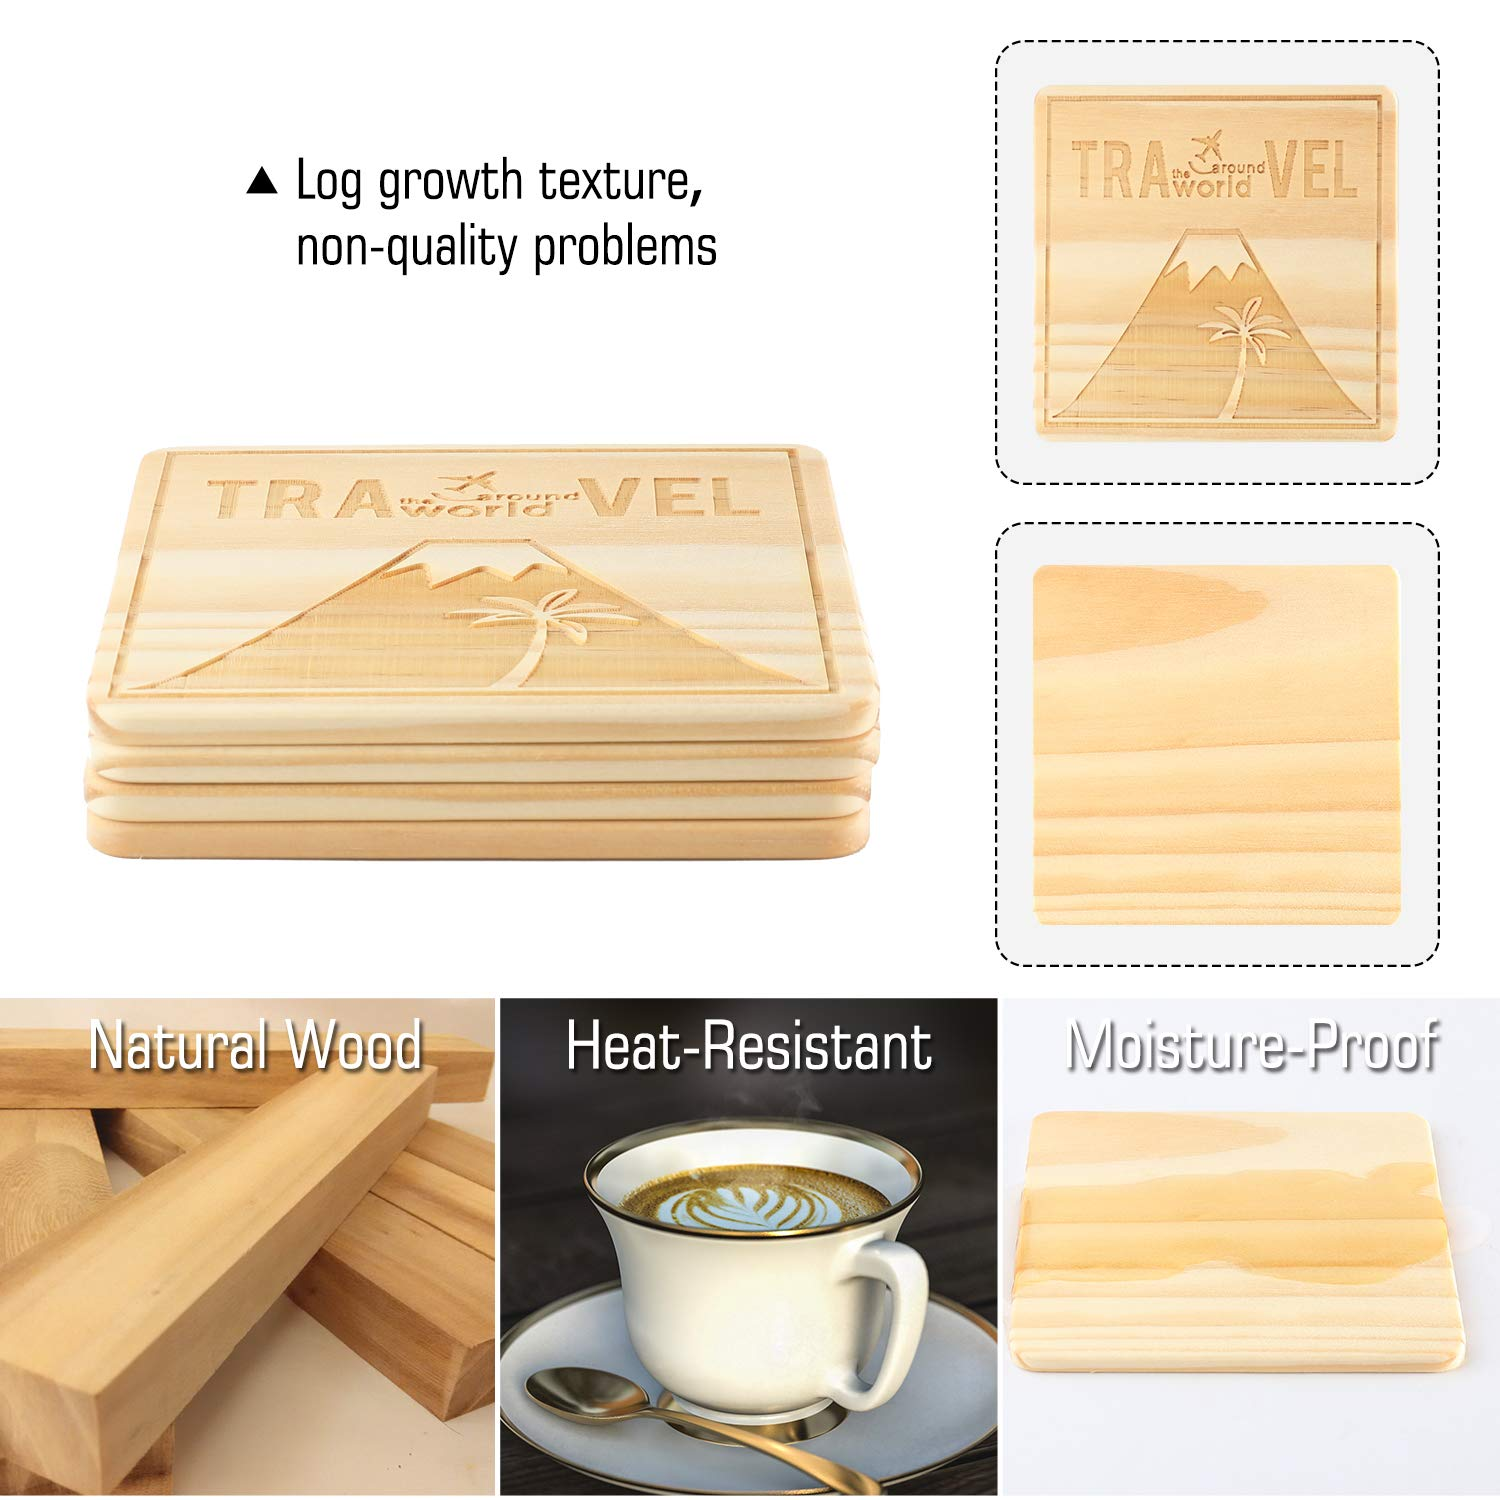 Table Mug Cup Mats Funny Square Drink Coasters for Home Office Bar Jagucho Natural Wood Coasters for Drinks Absorbent Set of 4 PCS Arc de Triomphe Personalized Pattern Cute Housewarming Gifts